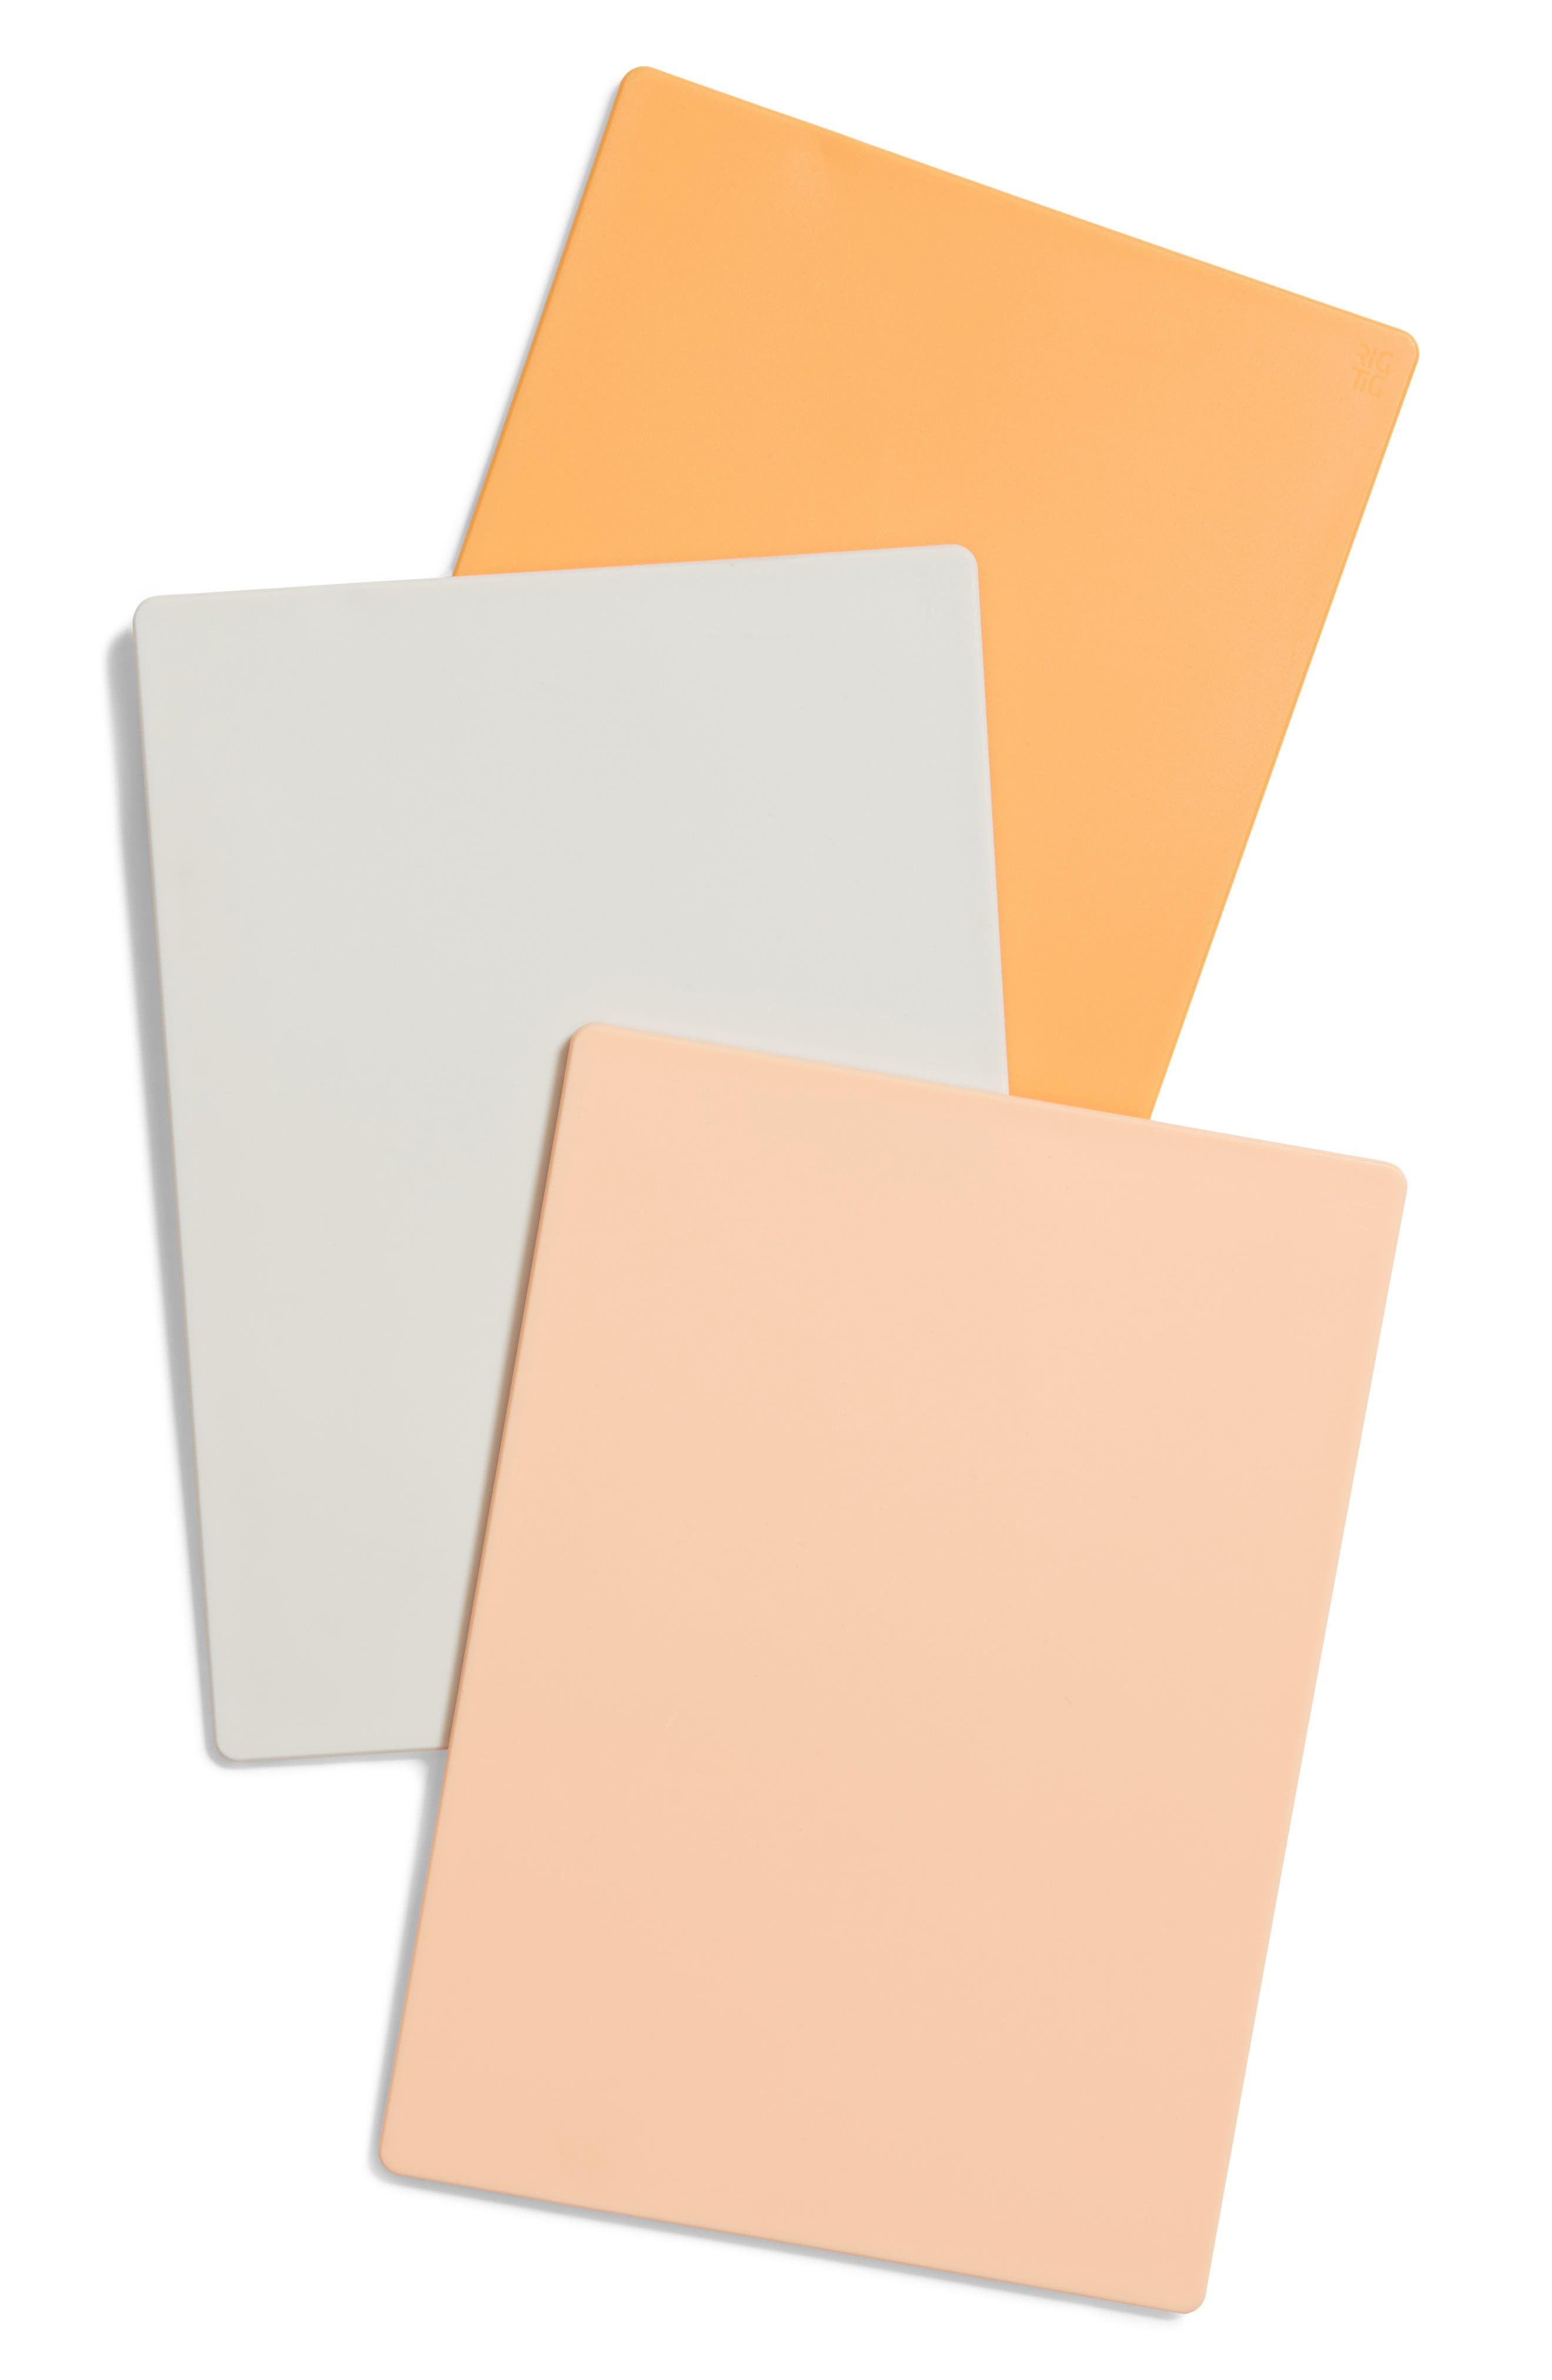 Rig-Tig Chop-It Set of 3 Cutting Boards,                             Alternate thumbnail 2, color,                             Apricot